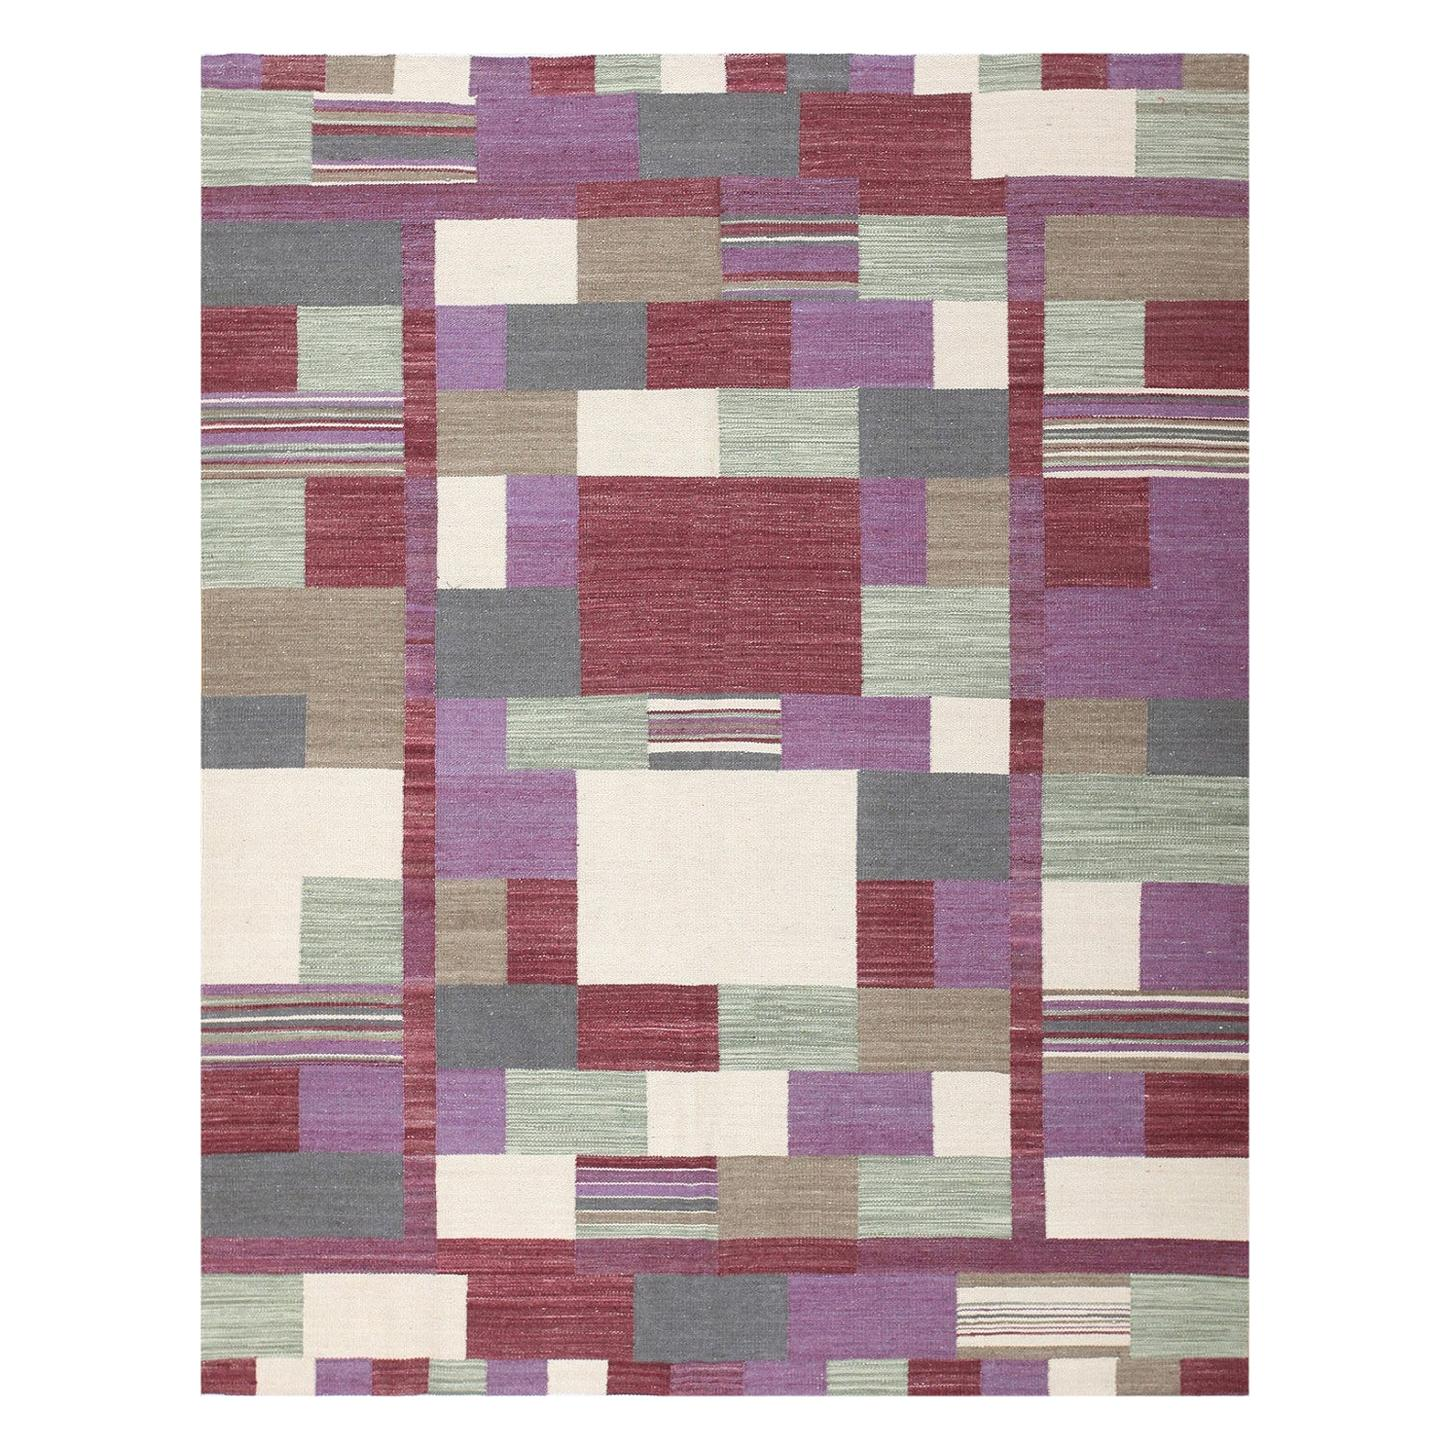 Swedish Inspired Modern Contemporary Kilim Rug. Size: 7 ft 3 in x 9 ft 1 in